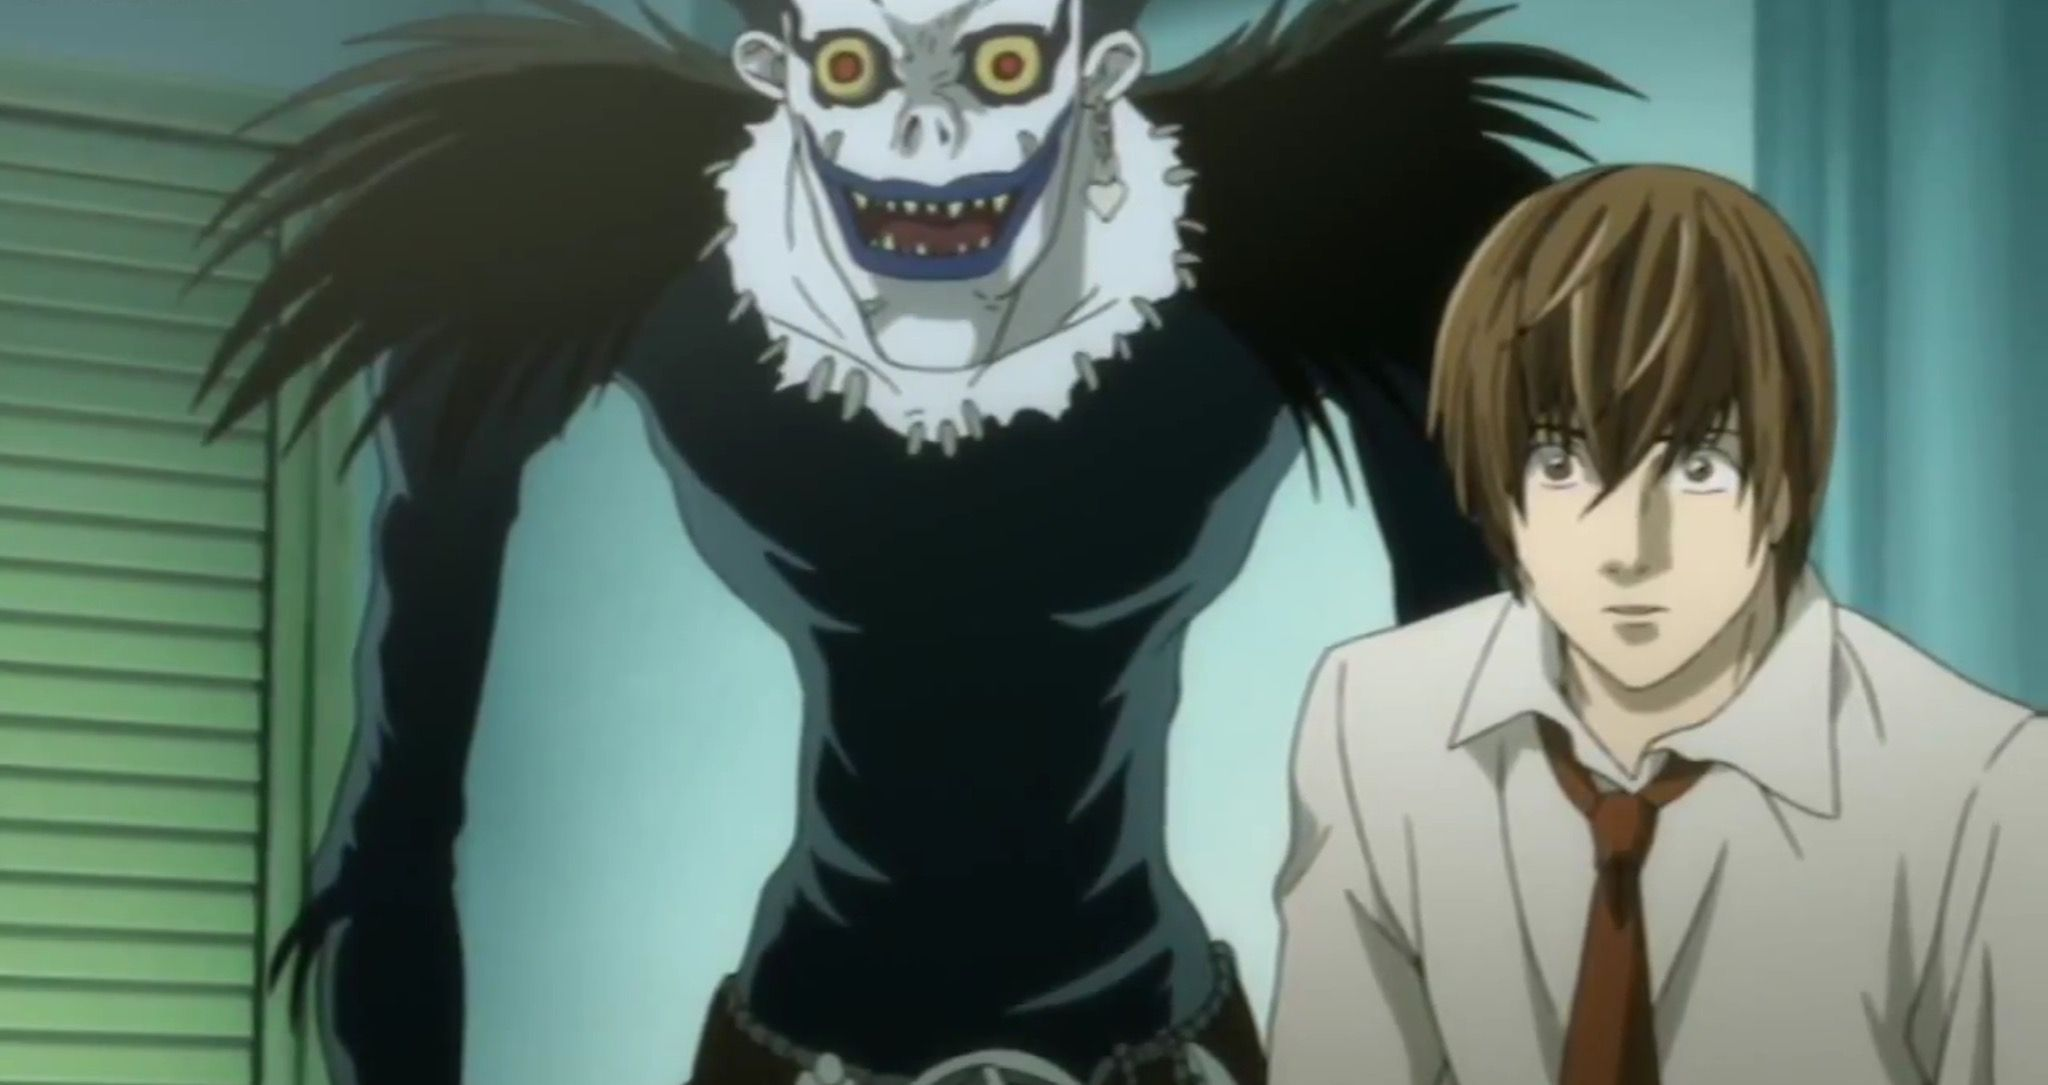 Pin by Claire Garchitorena on Death Note Death note